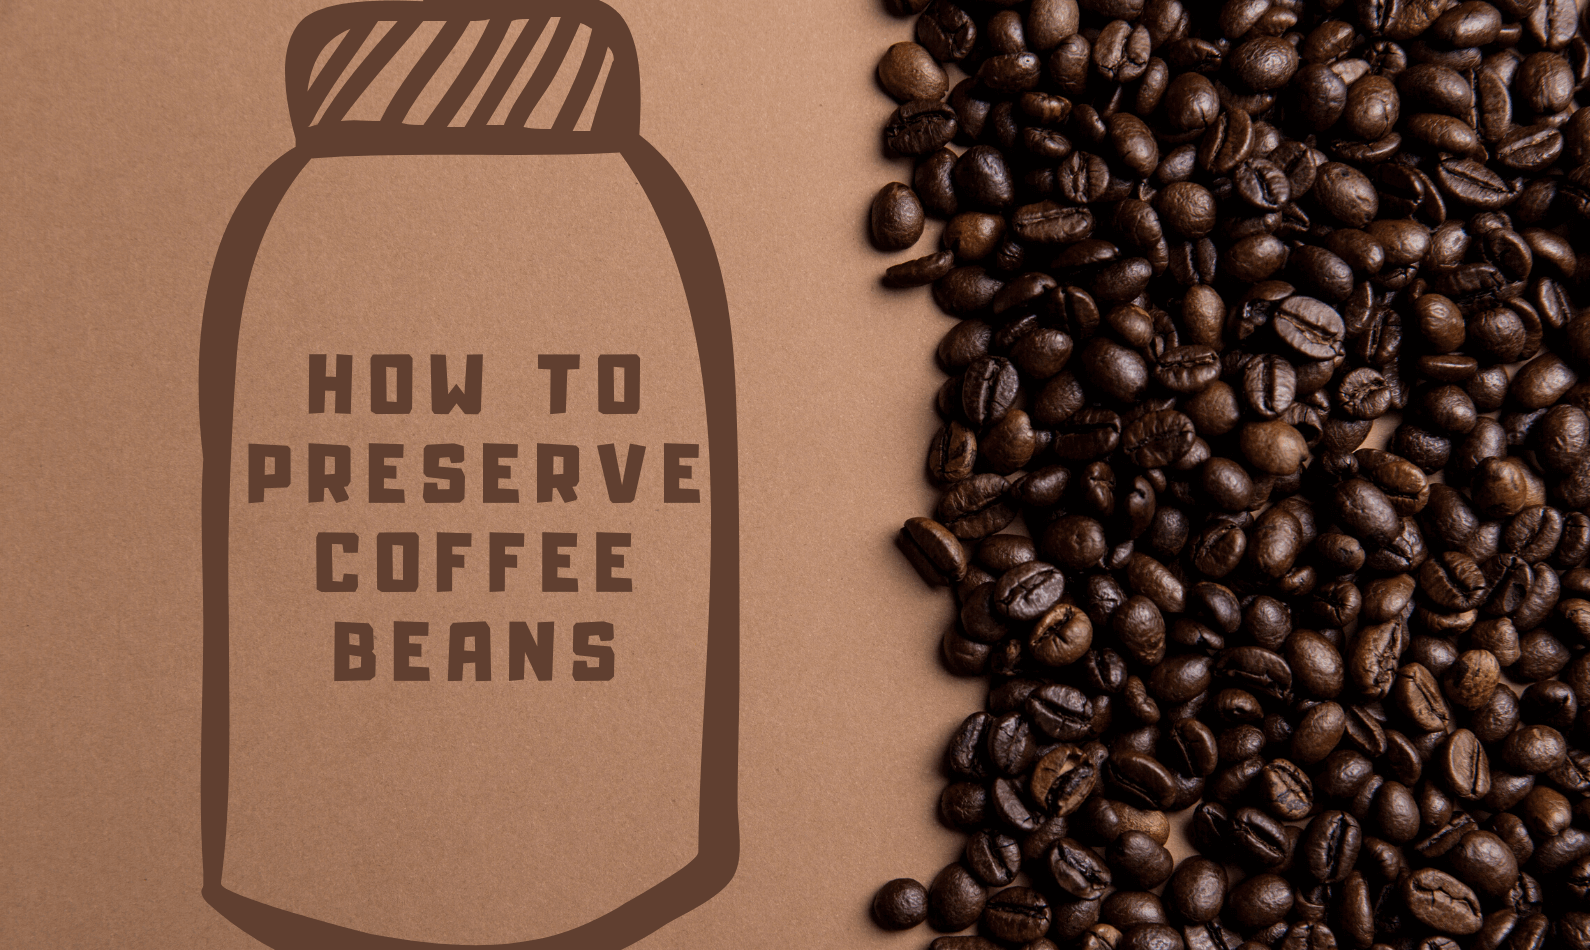 How to Preserve Coffee Beans